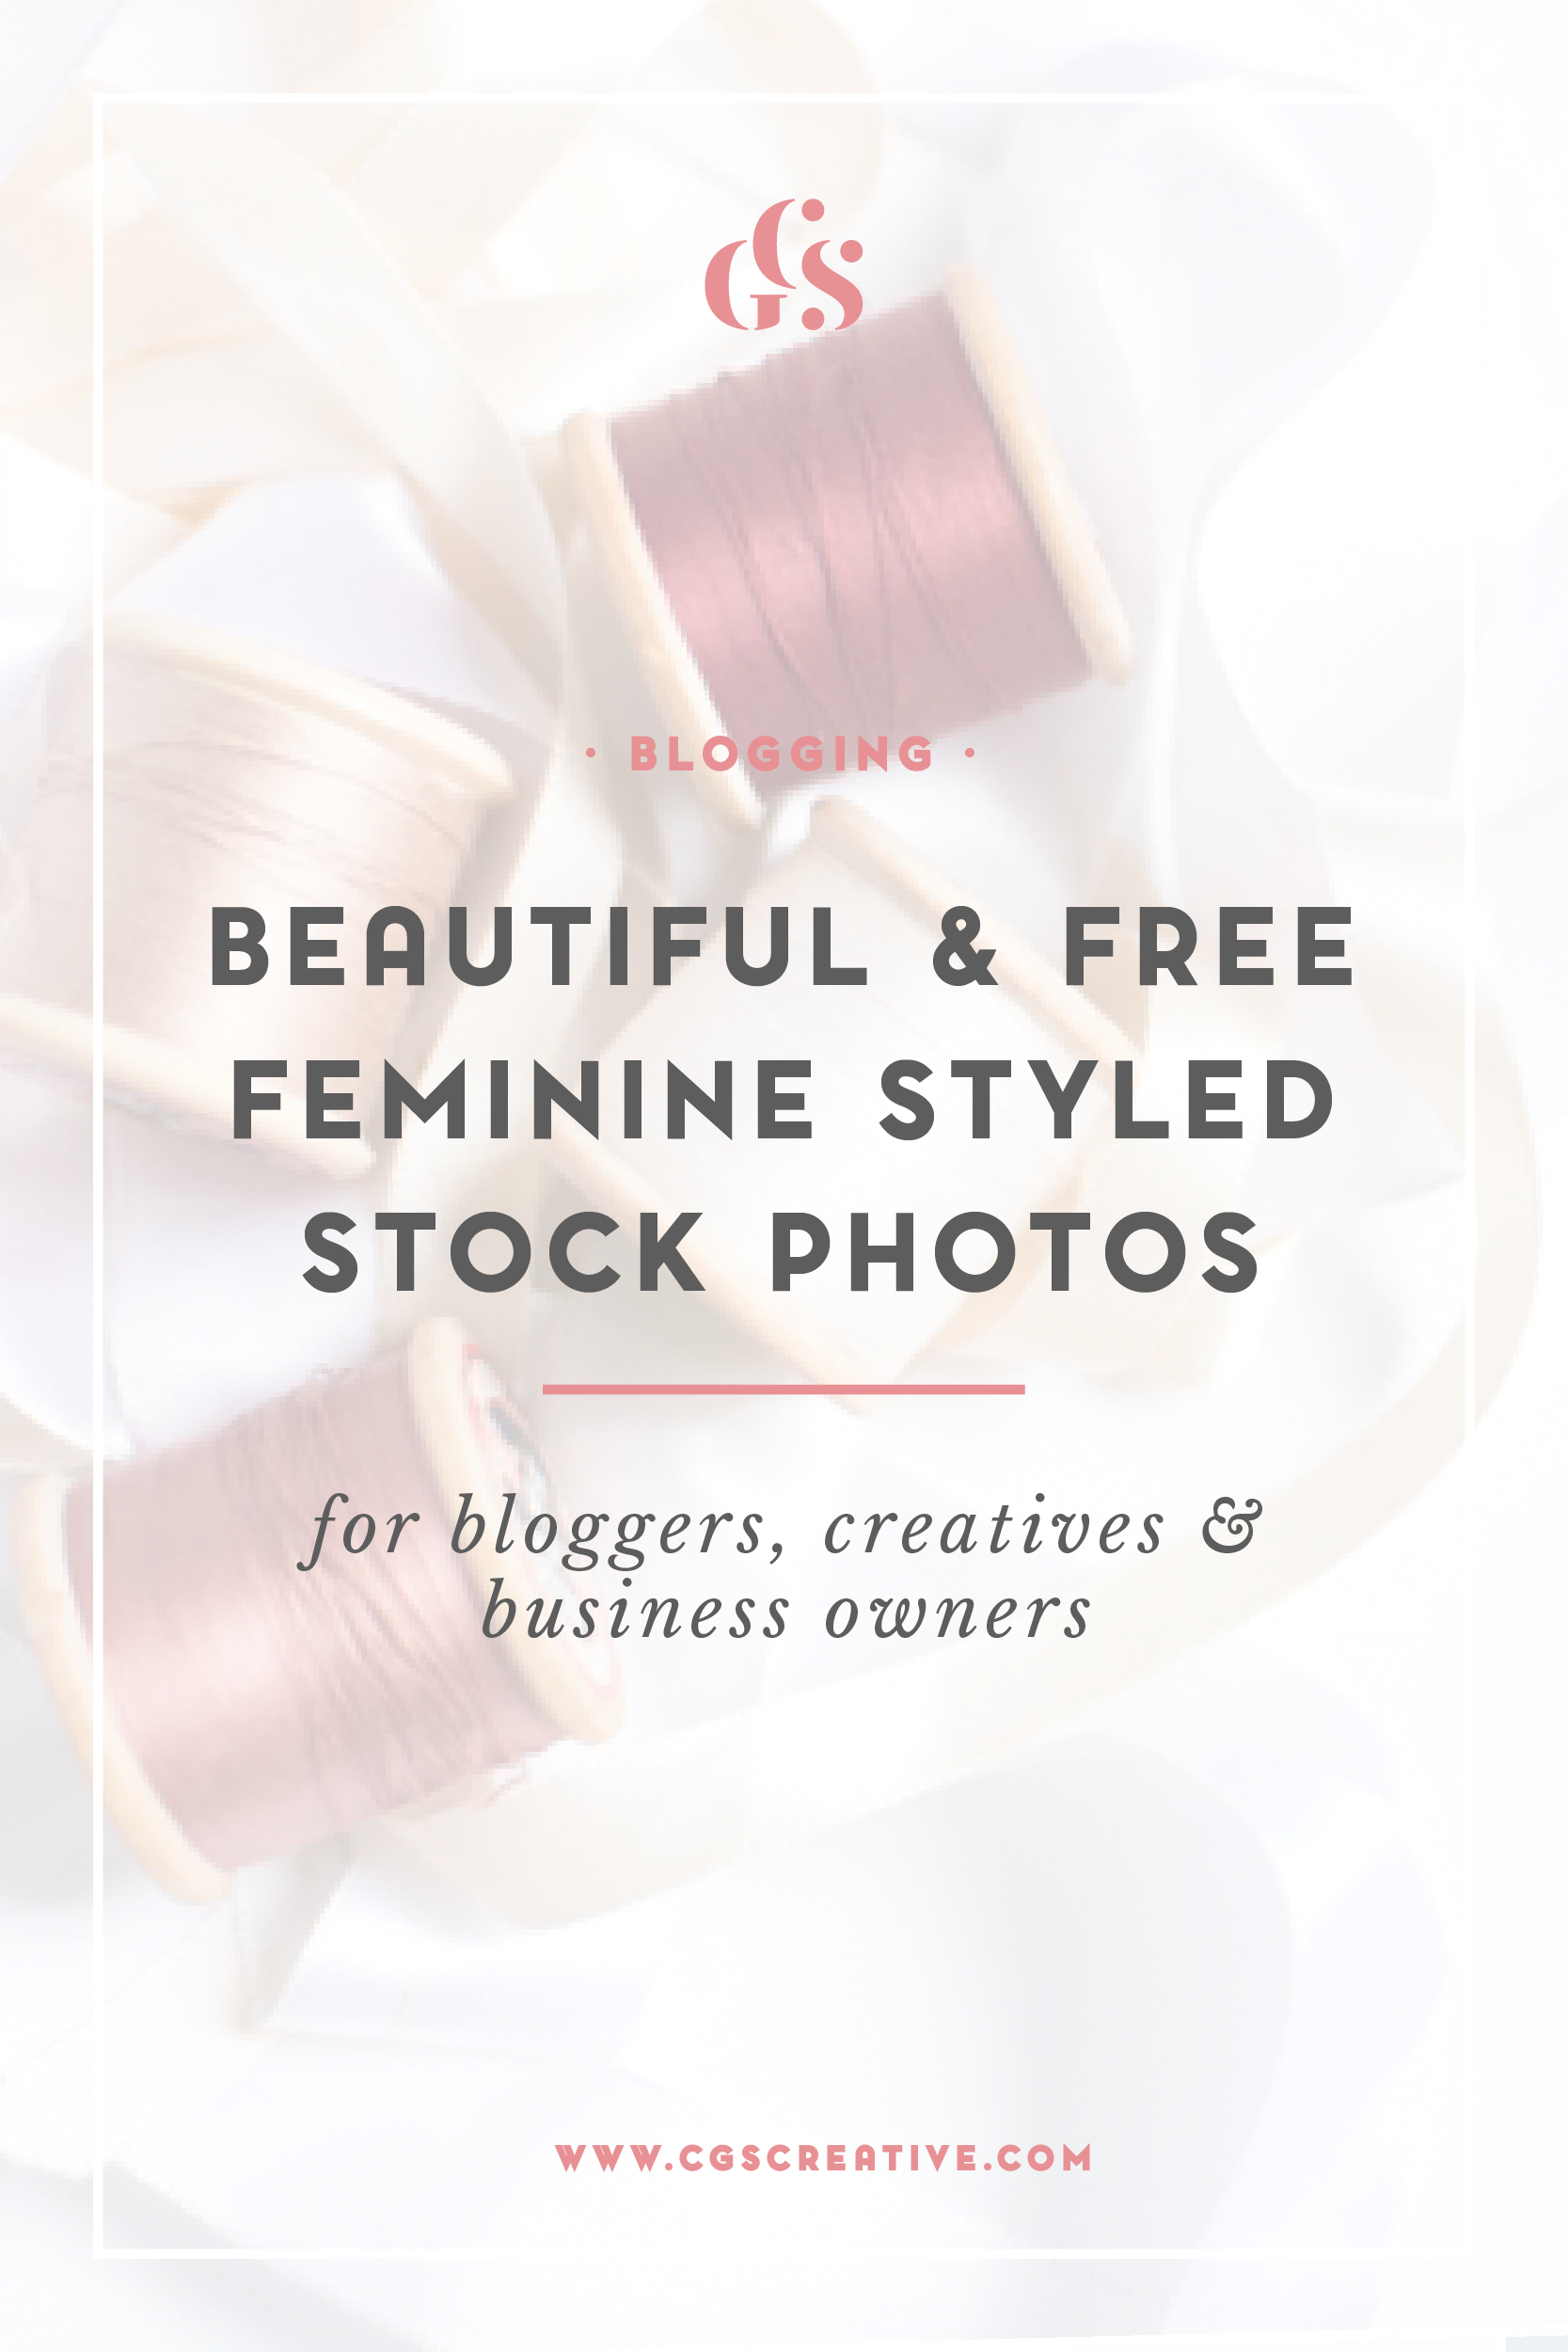 Beautiful & Free Feminine Styled Stock Photos for Bloggers, Creatives & Entrepreneuers-03.png